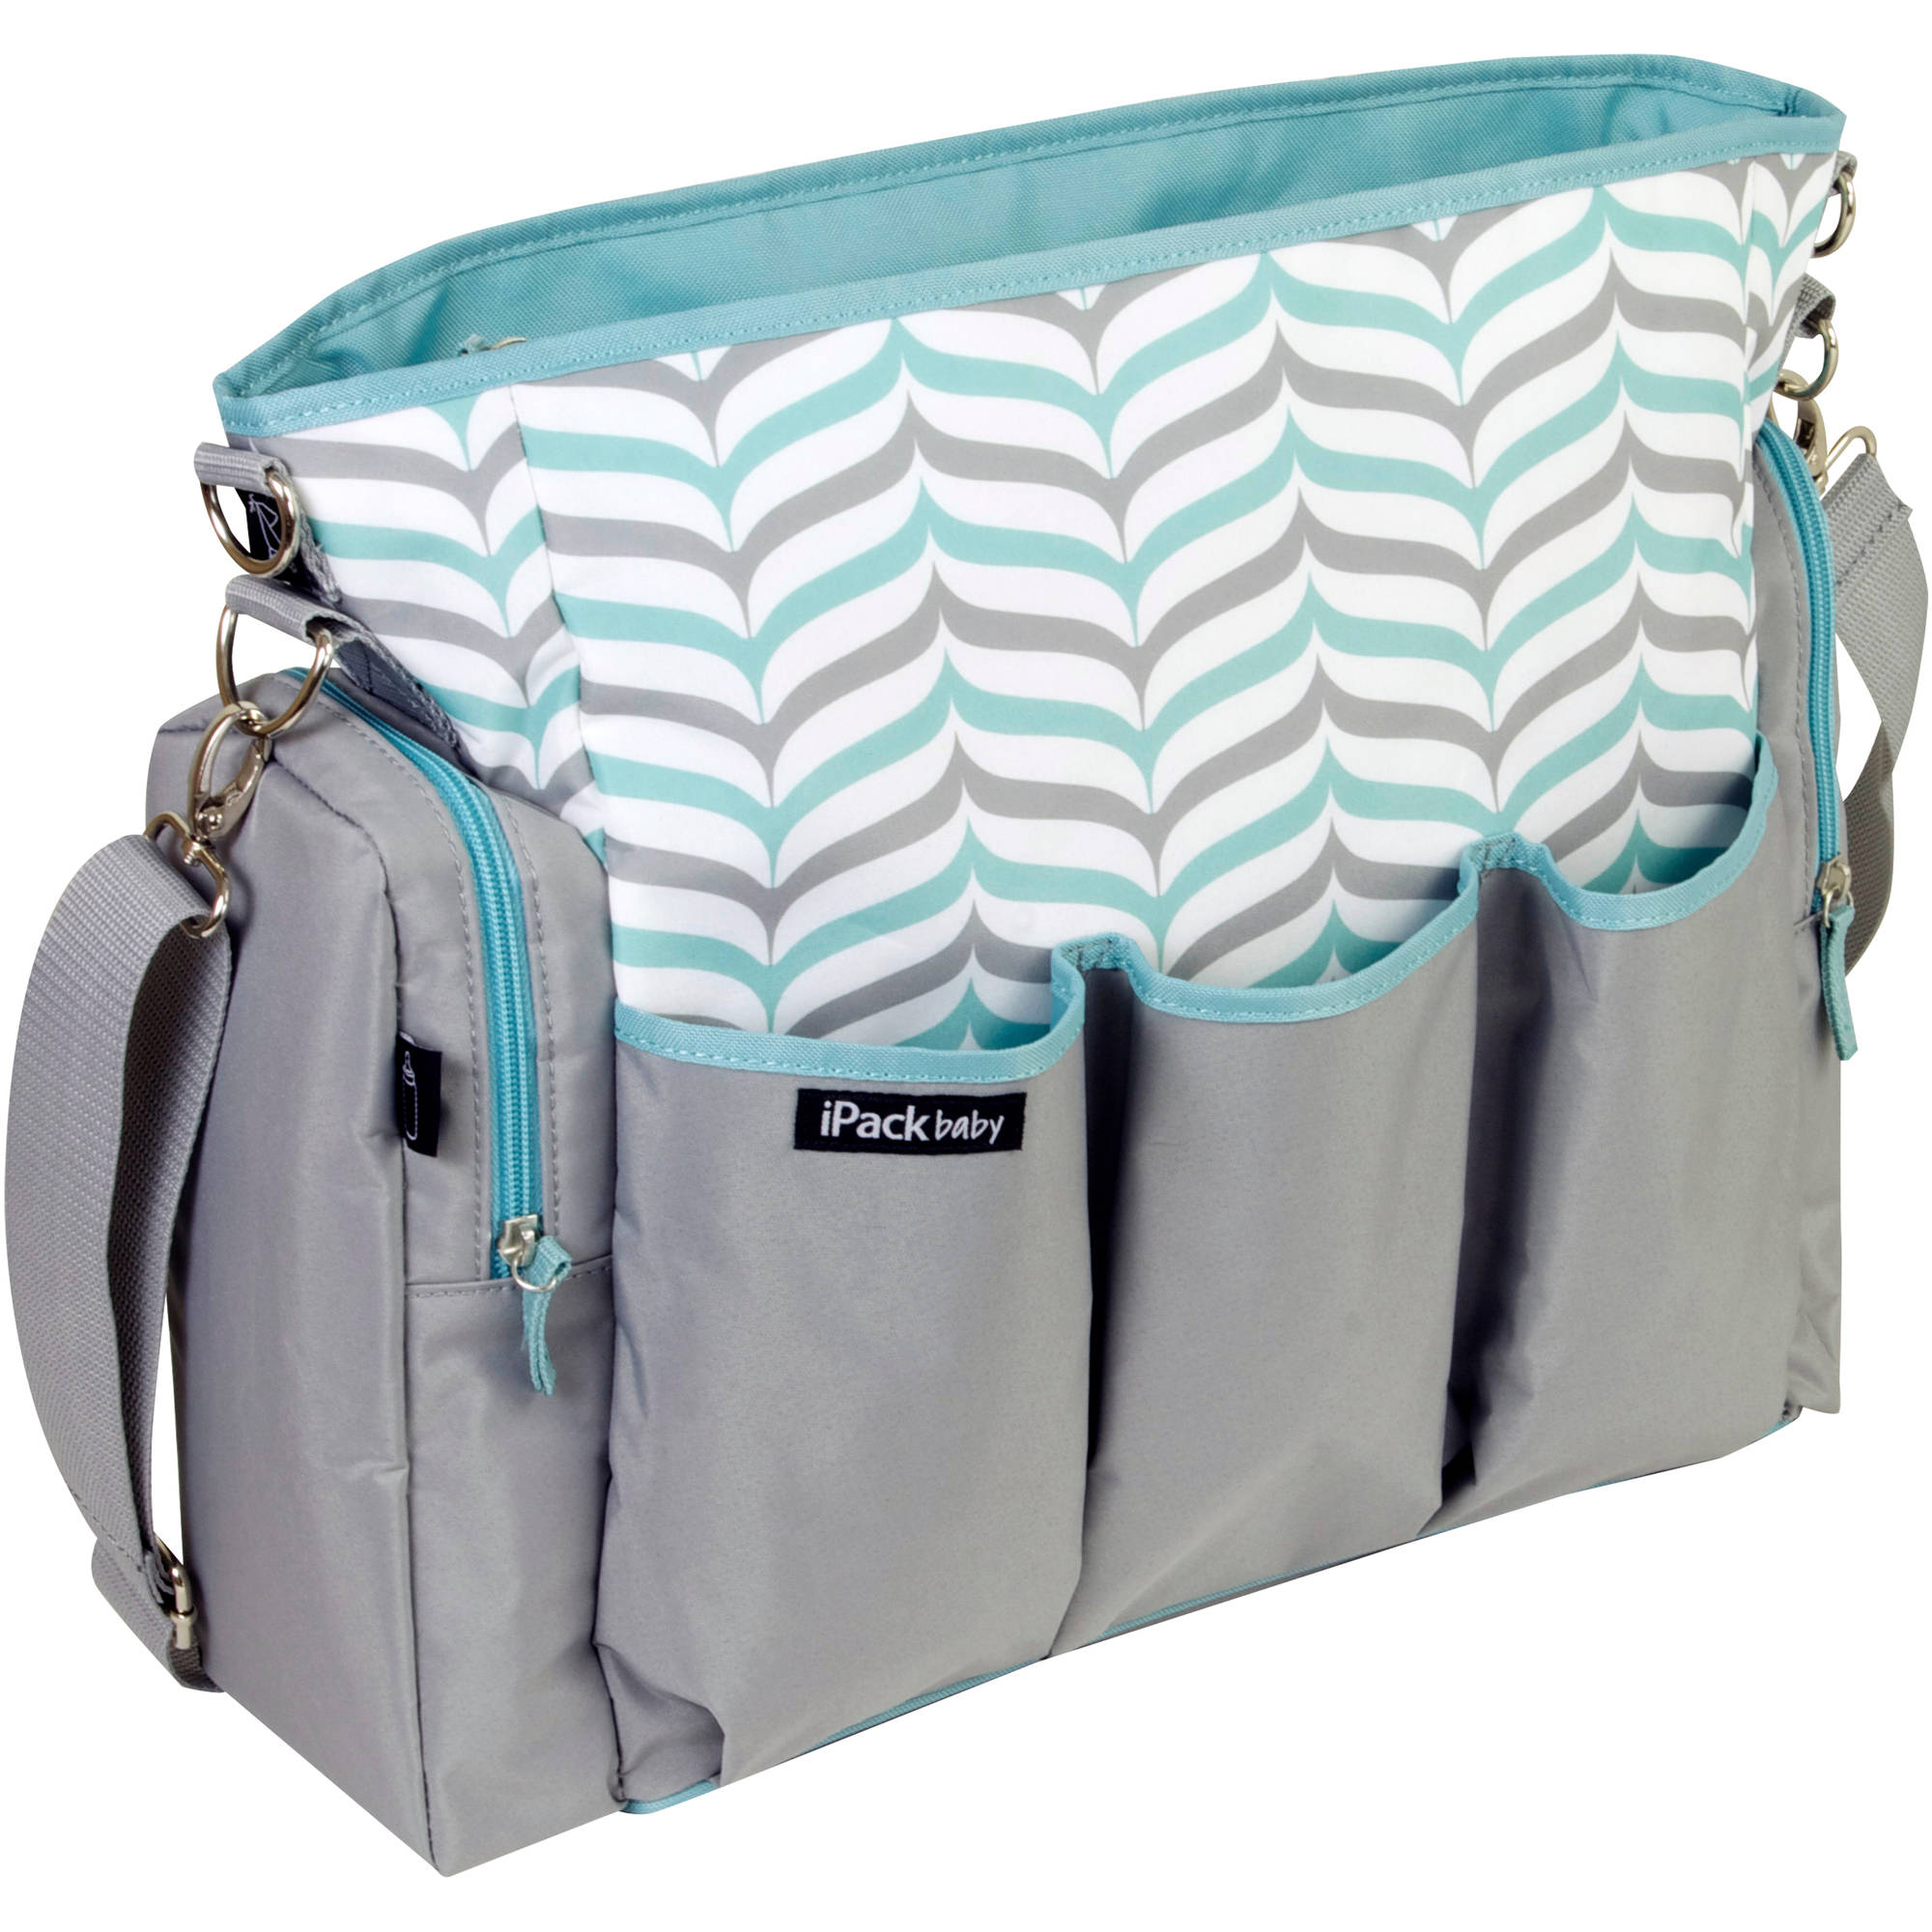 diaper bag designer sale q7g8  diaper bag baby